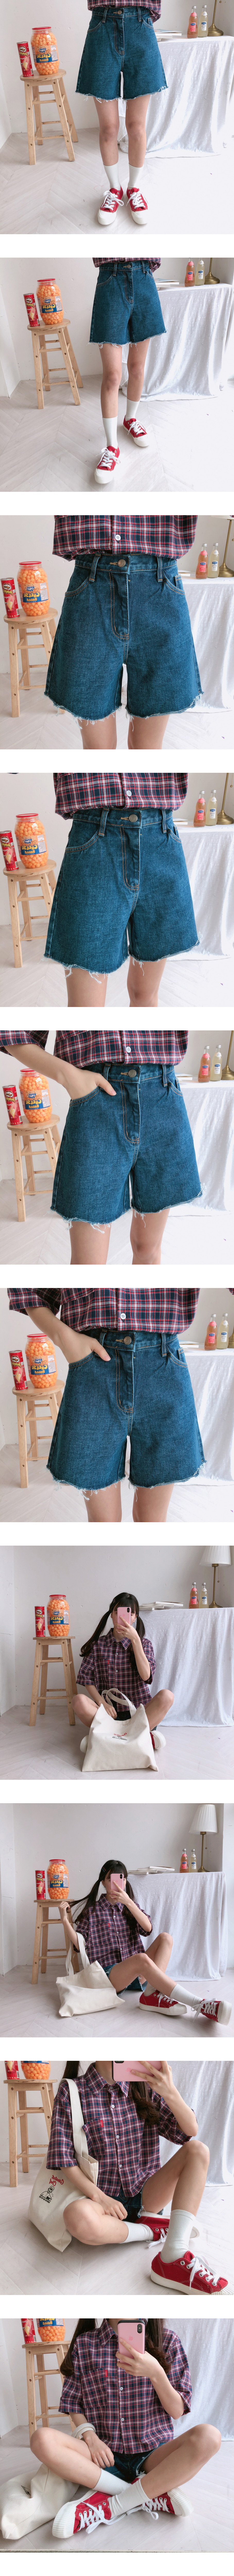 Foie banghair denim shorts